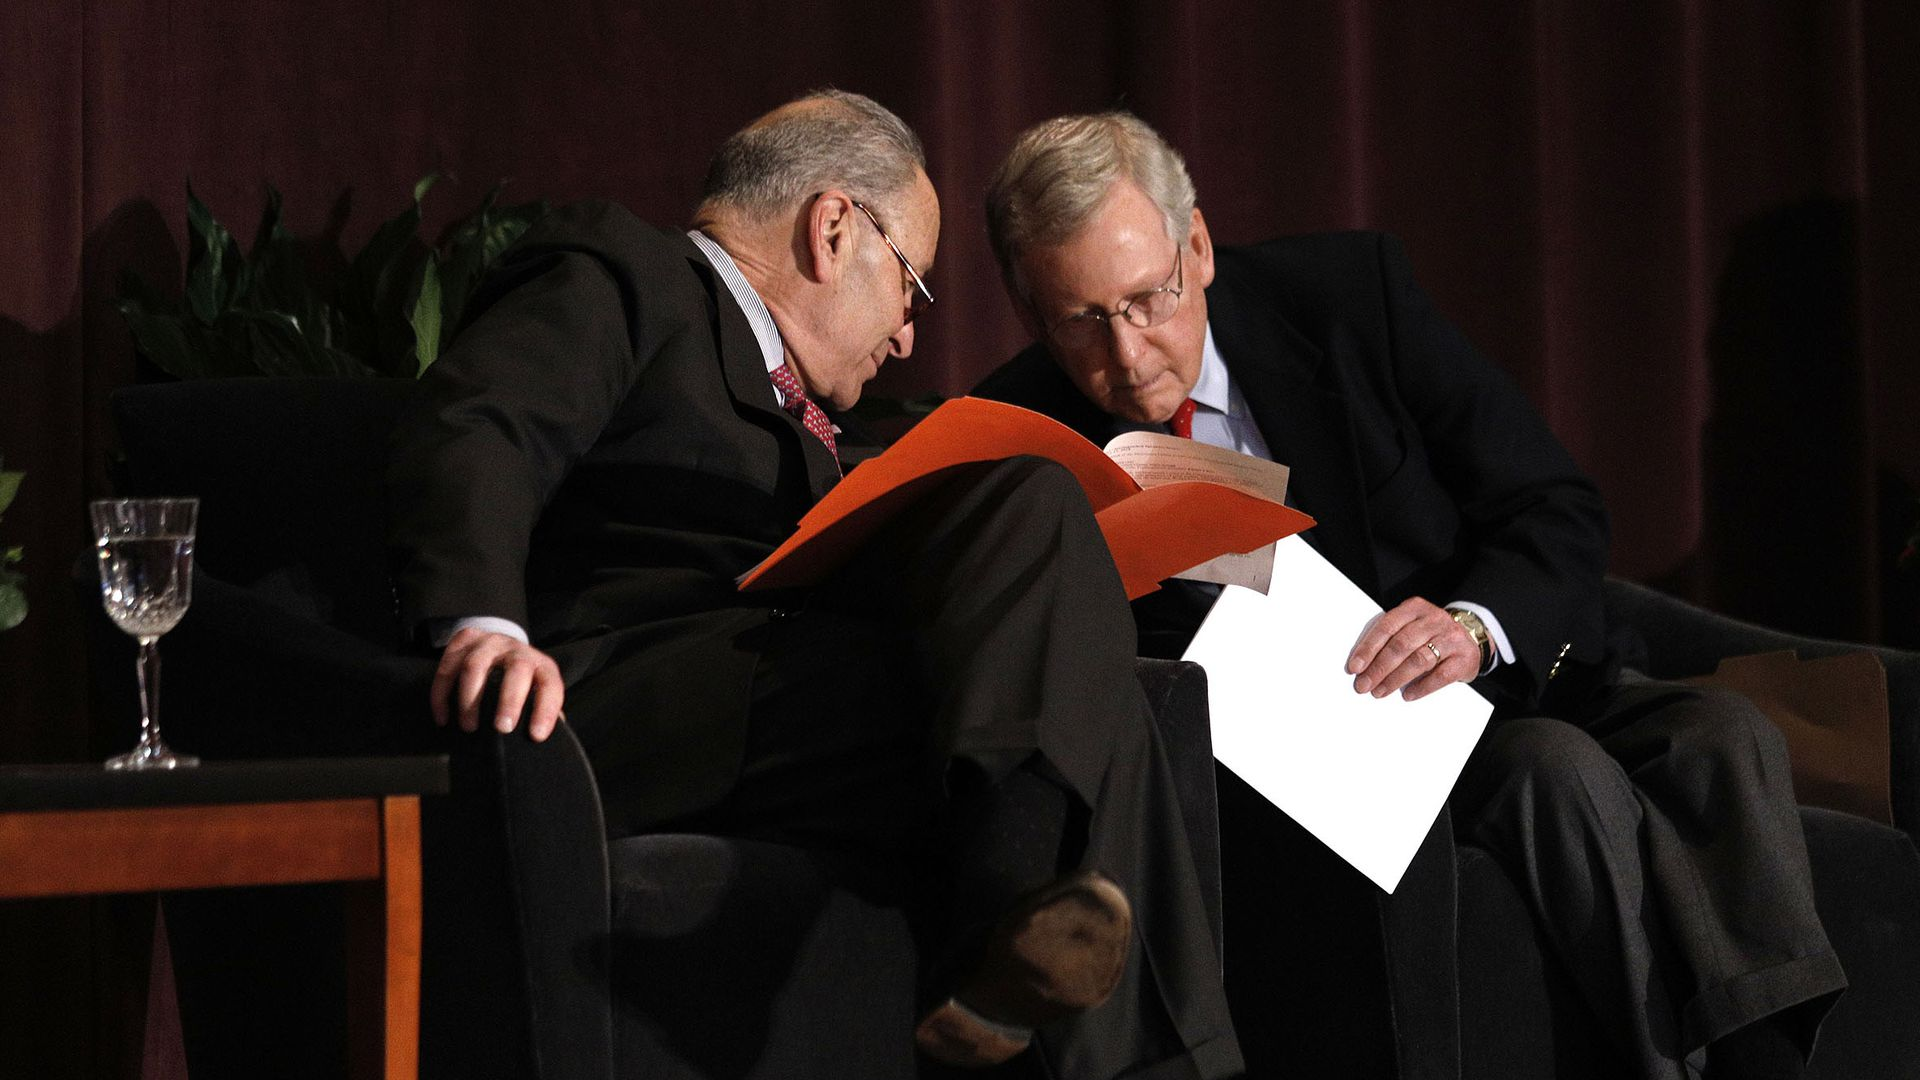 Sens. Chuck Schumer and Mitch McConnell